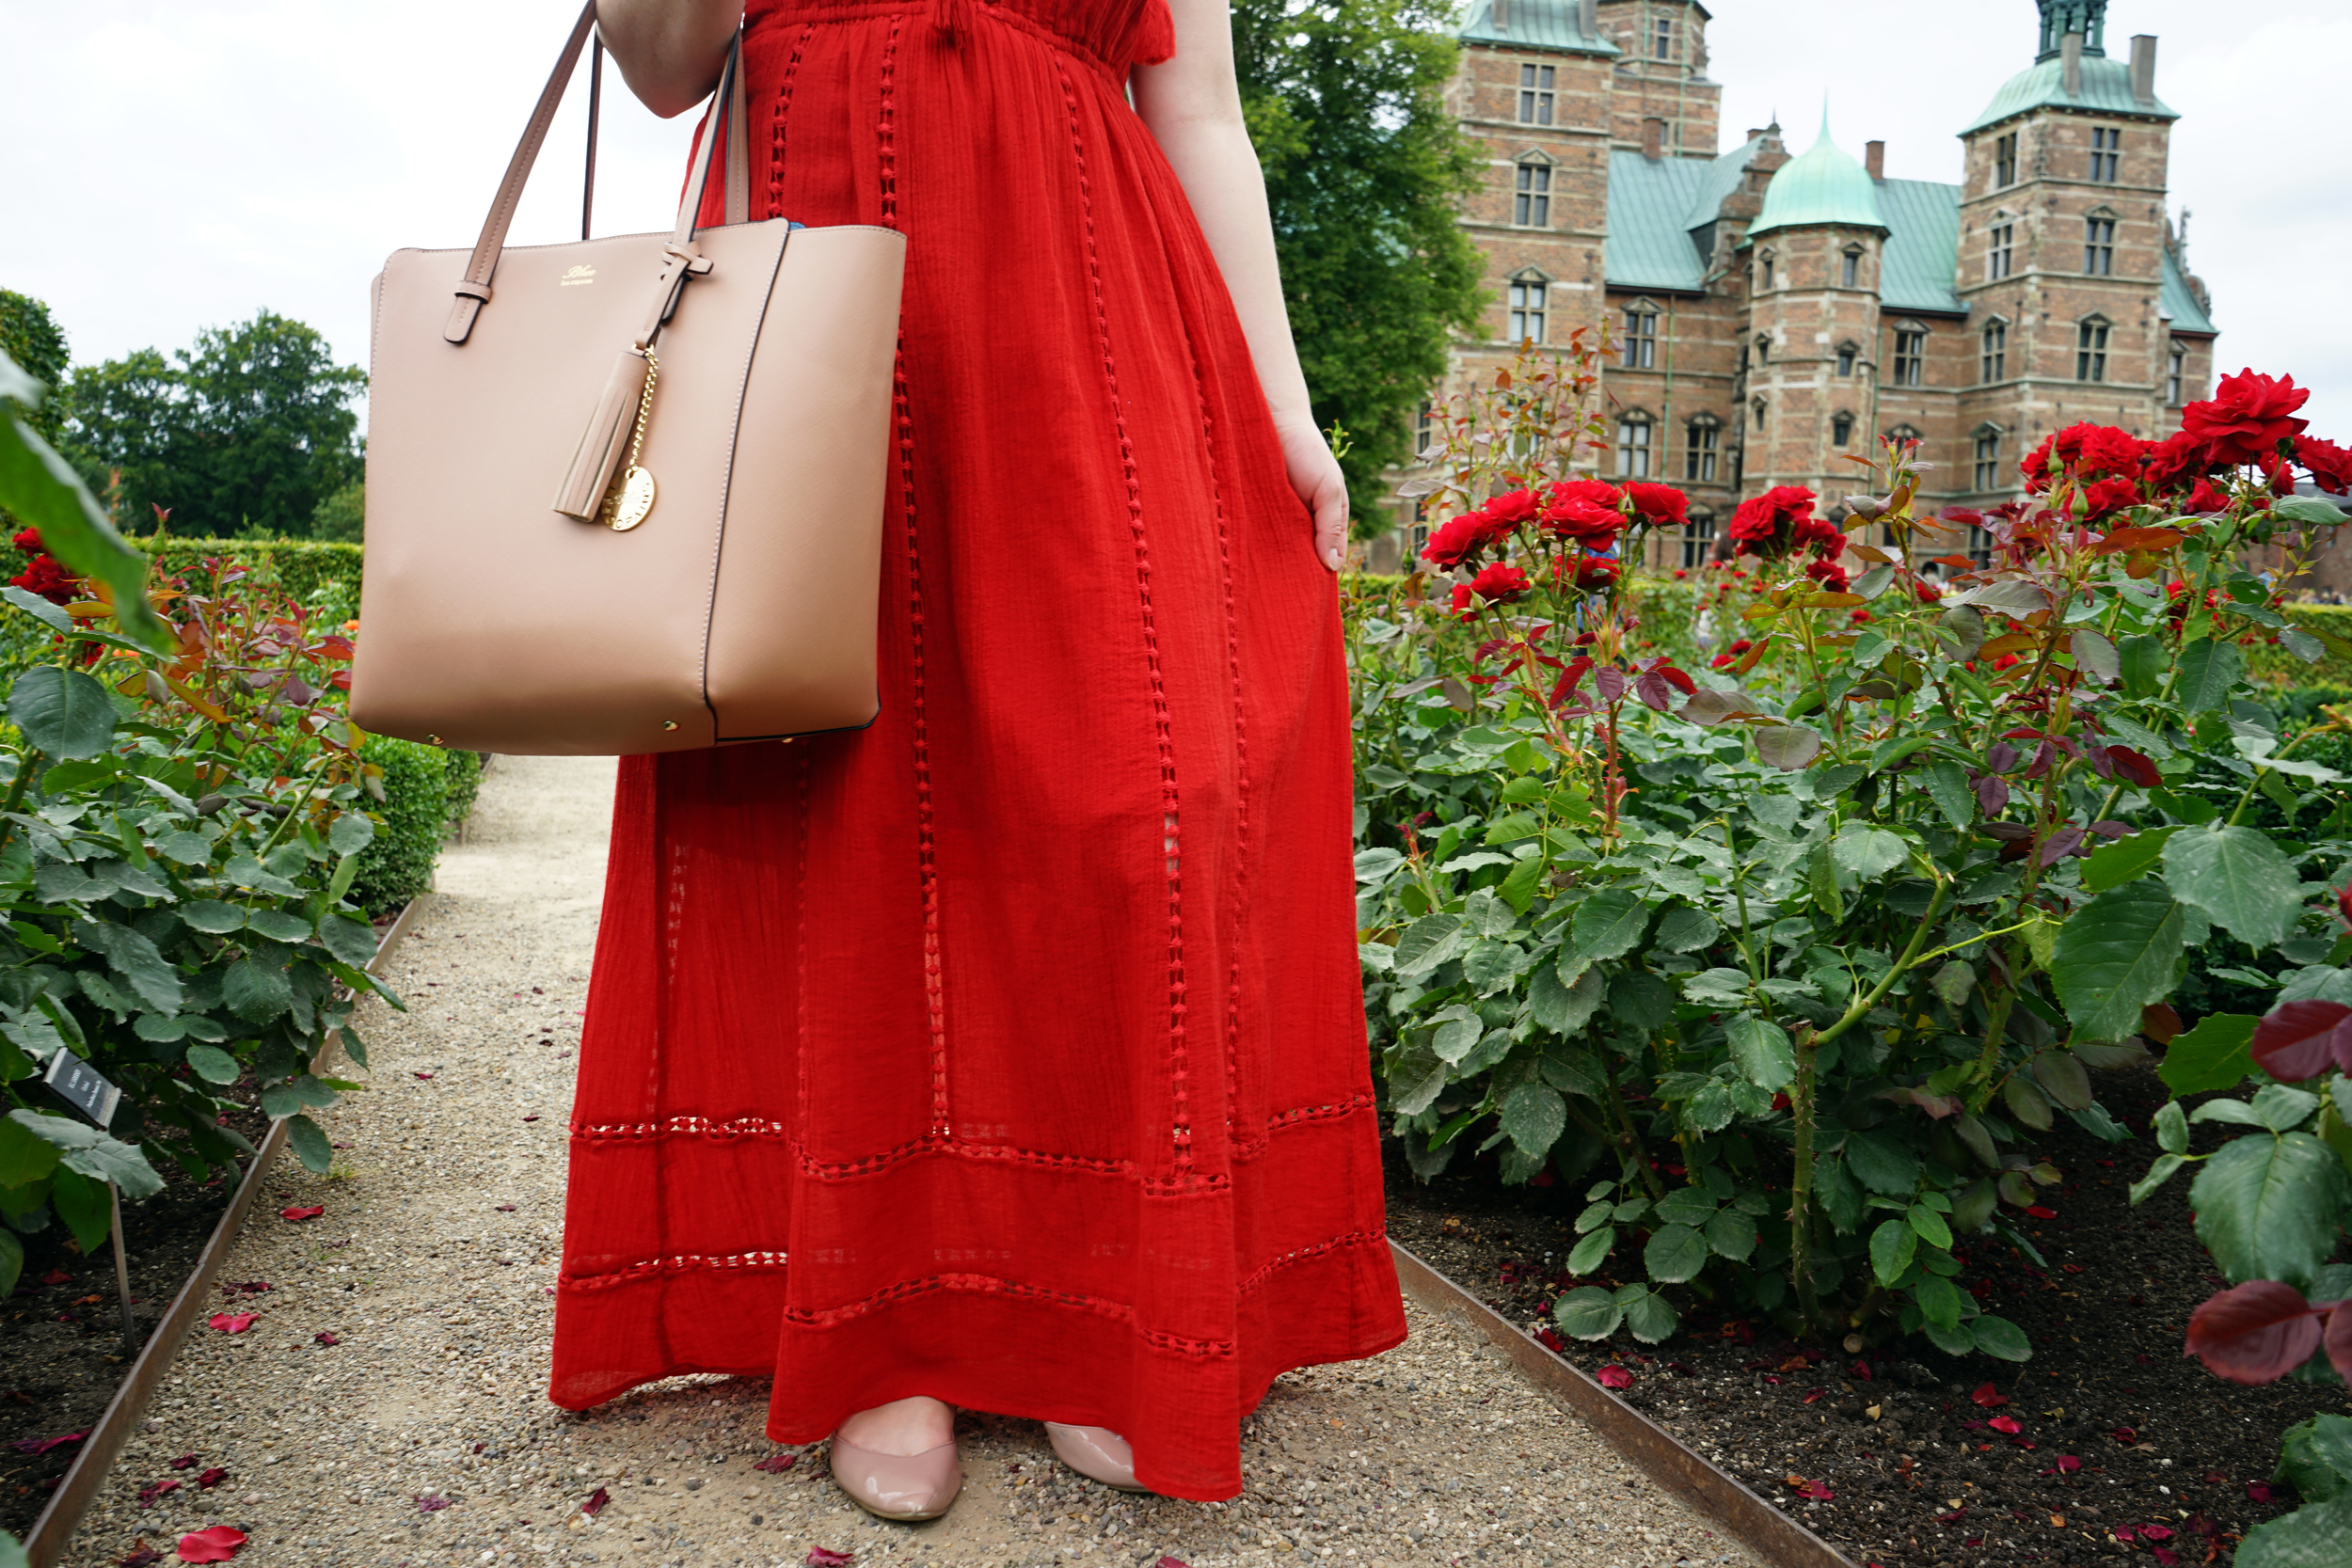 Maggie a la Mode - Why I Love Maxi Dresses 7.JPG